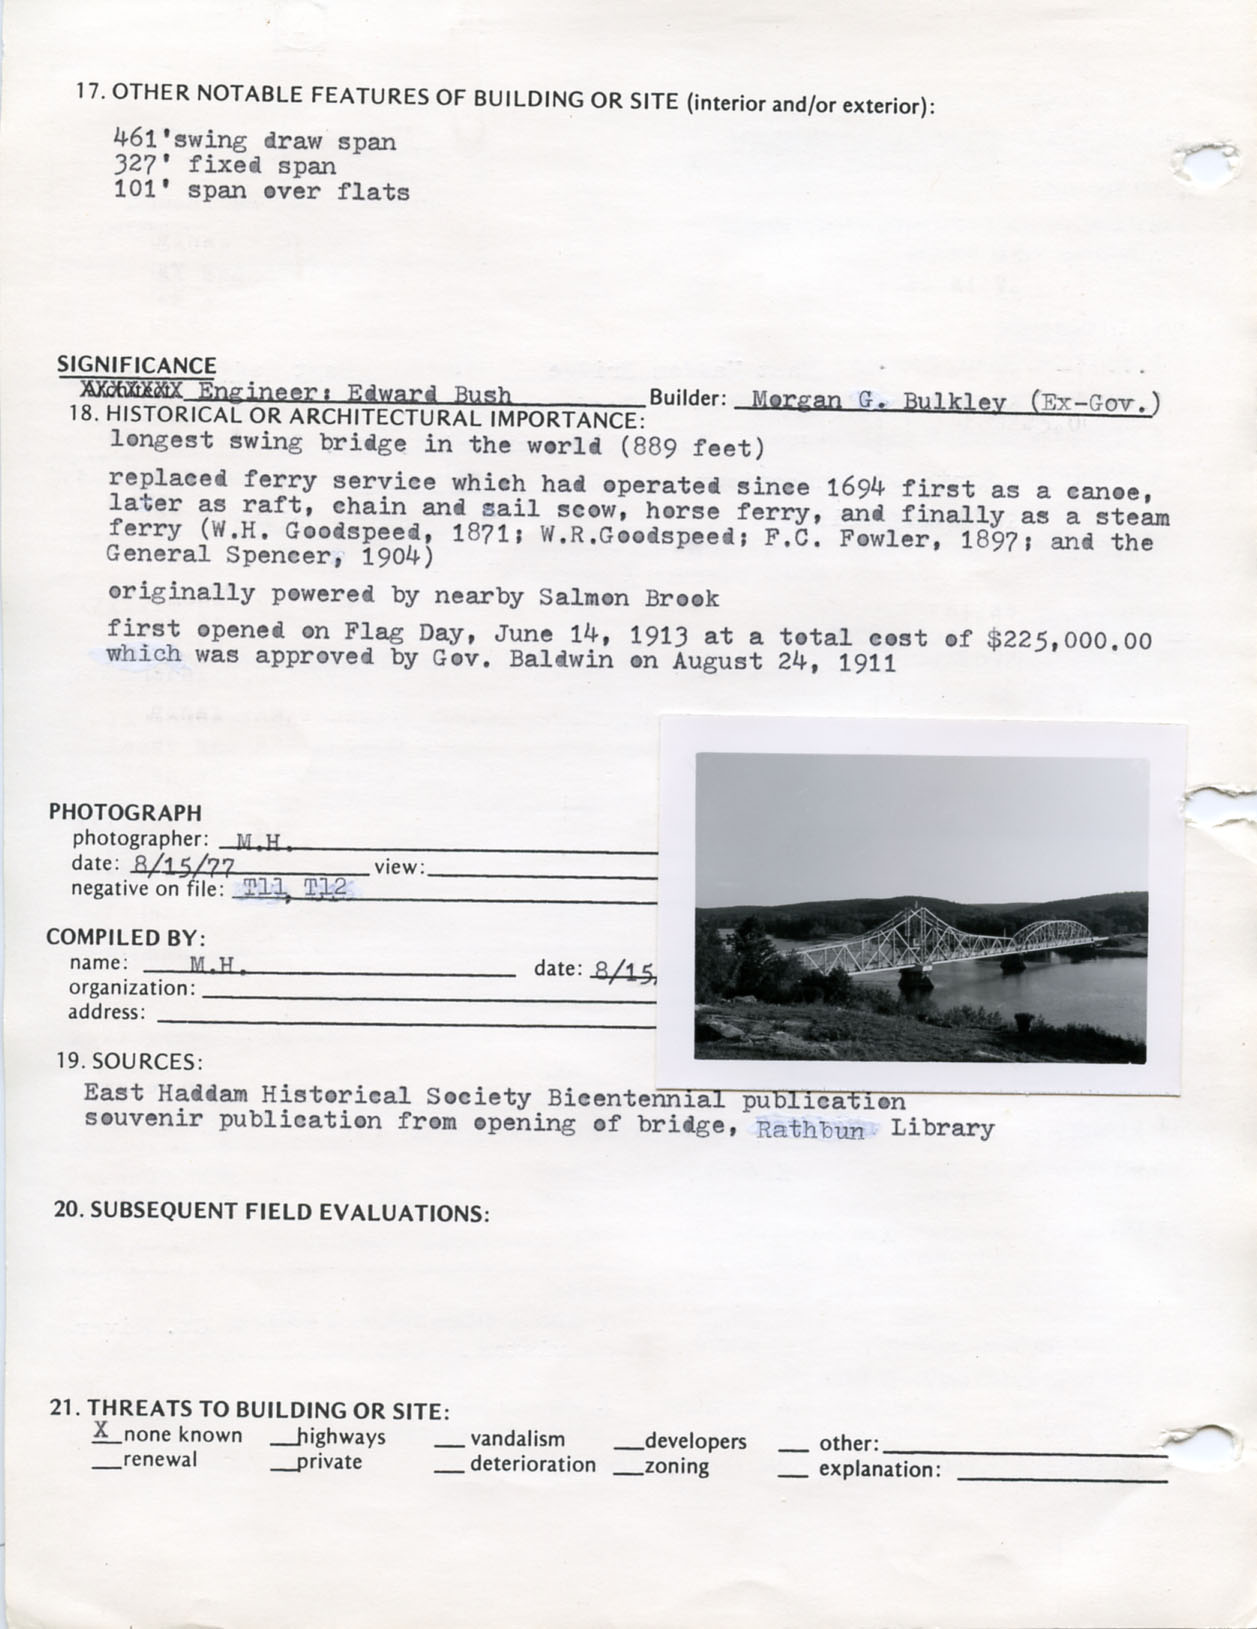 Architectural survey of East Haddam Bridge in East Hampton, Connecticut, 1977